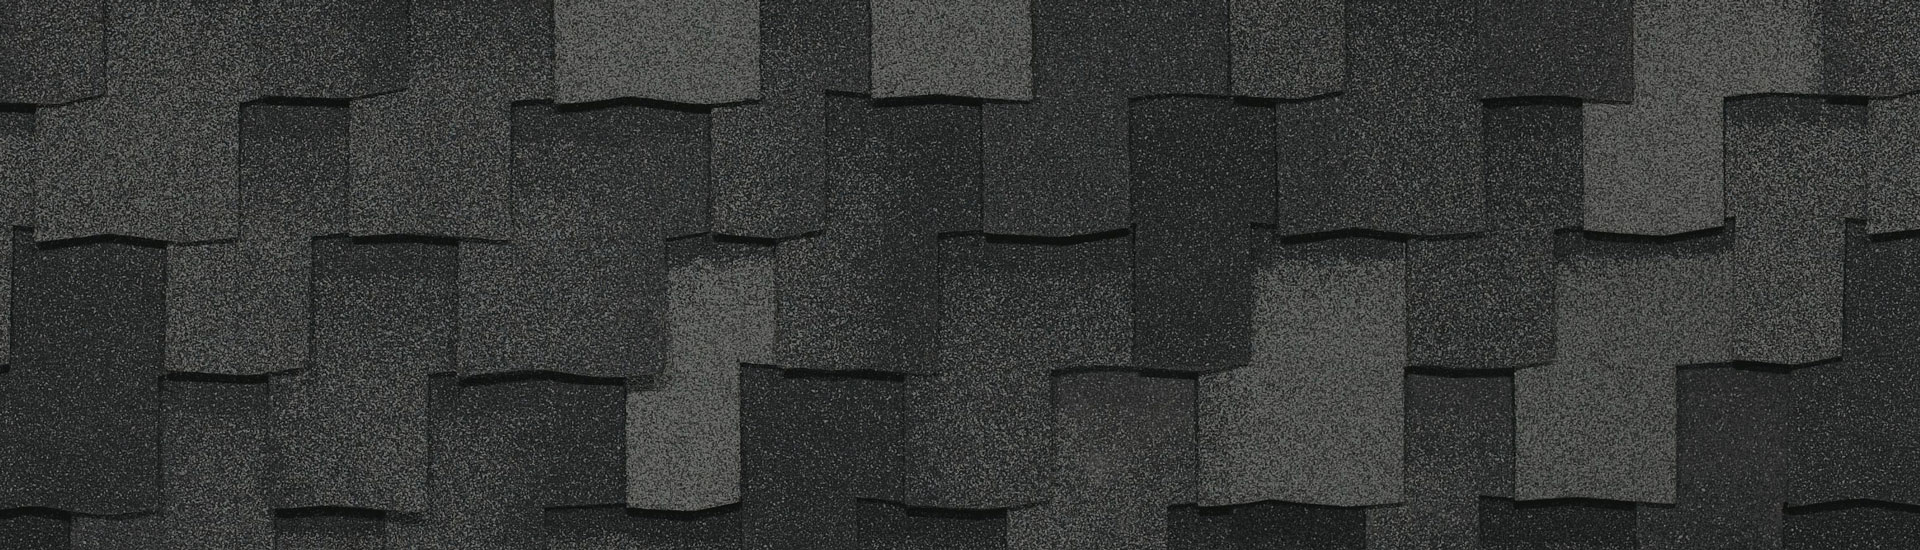 Crc Biltmore Shingles Colour Options Racka Roofing